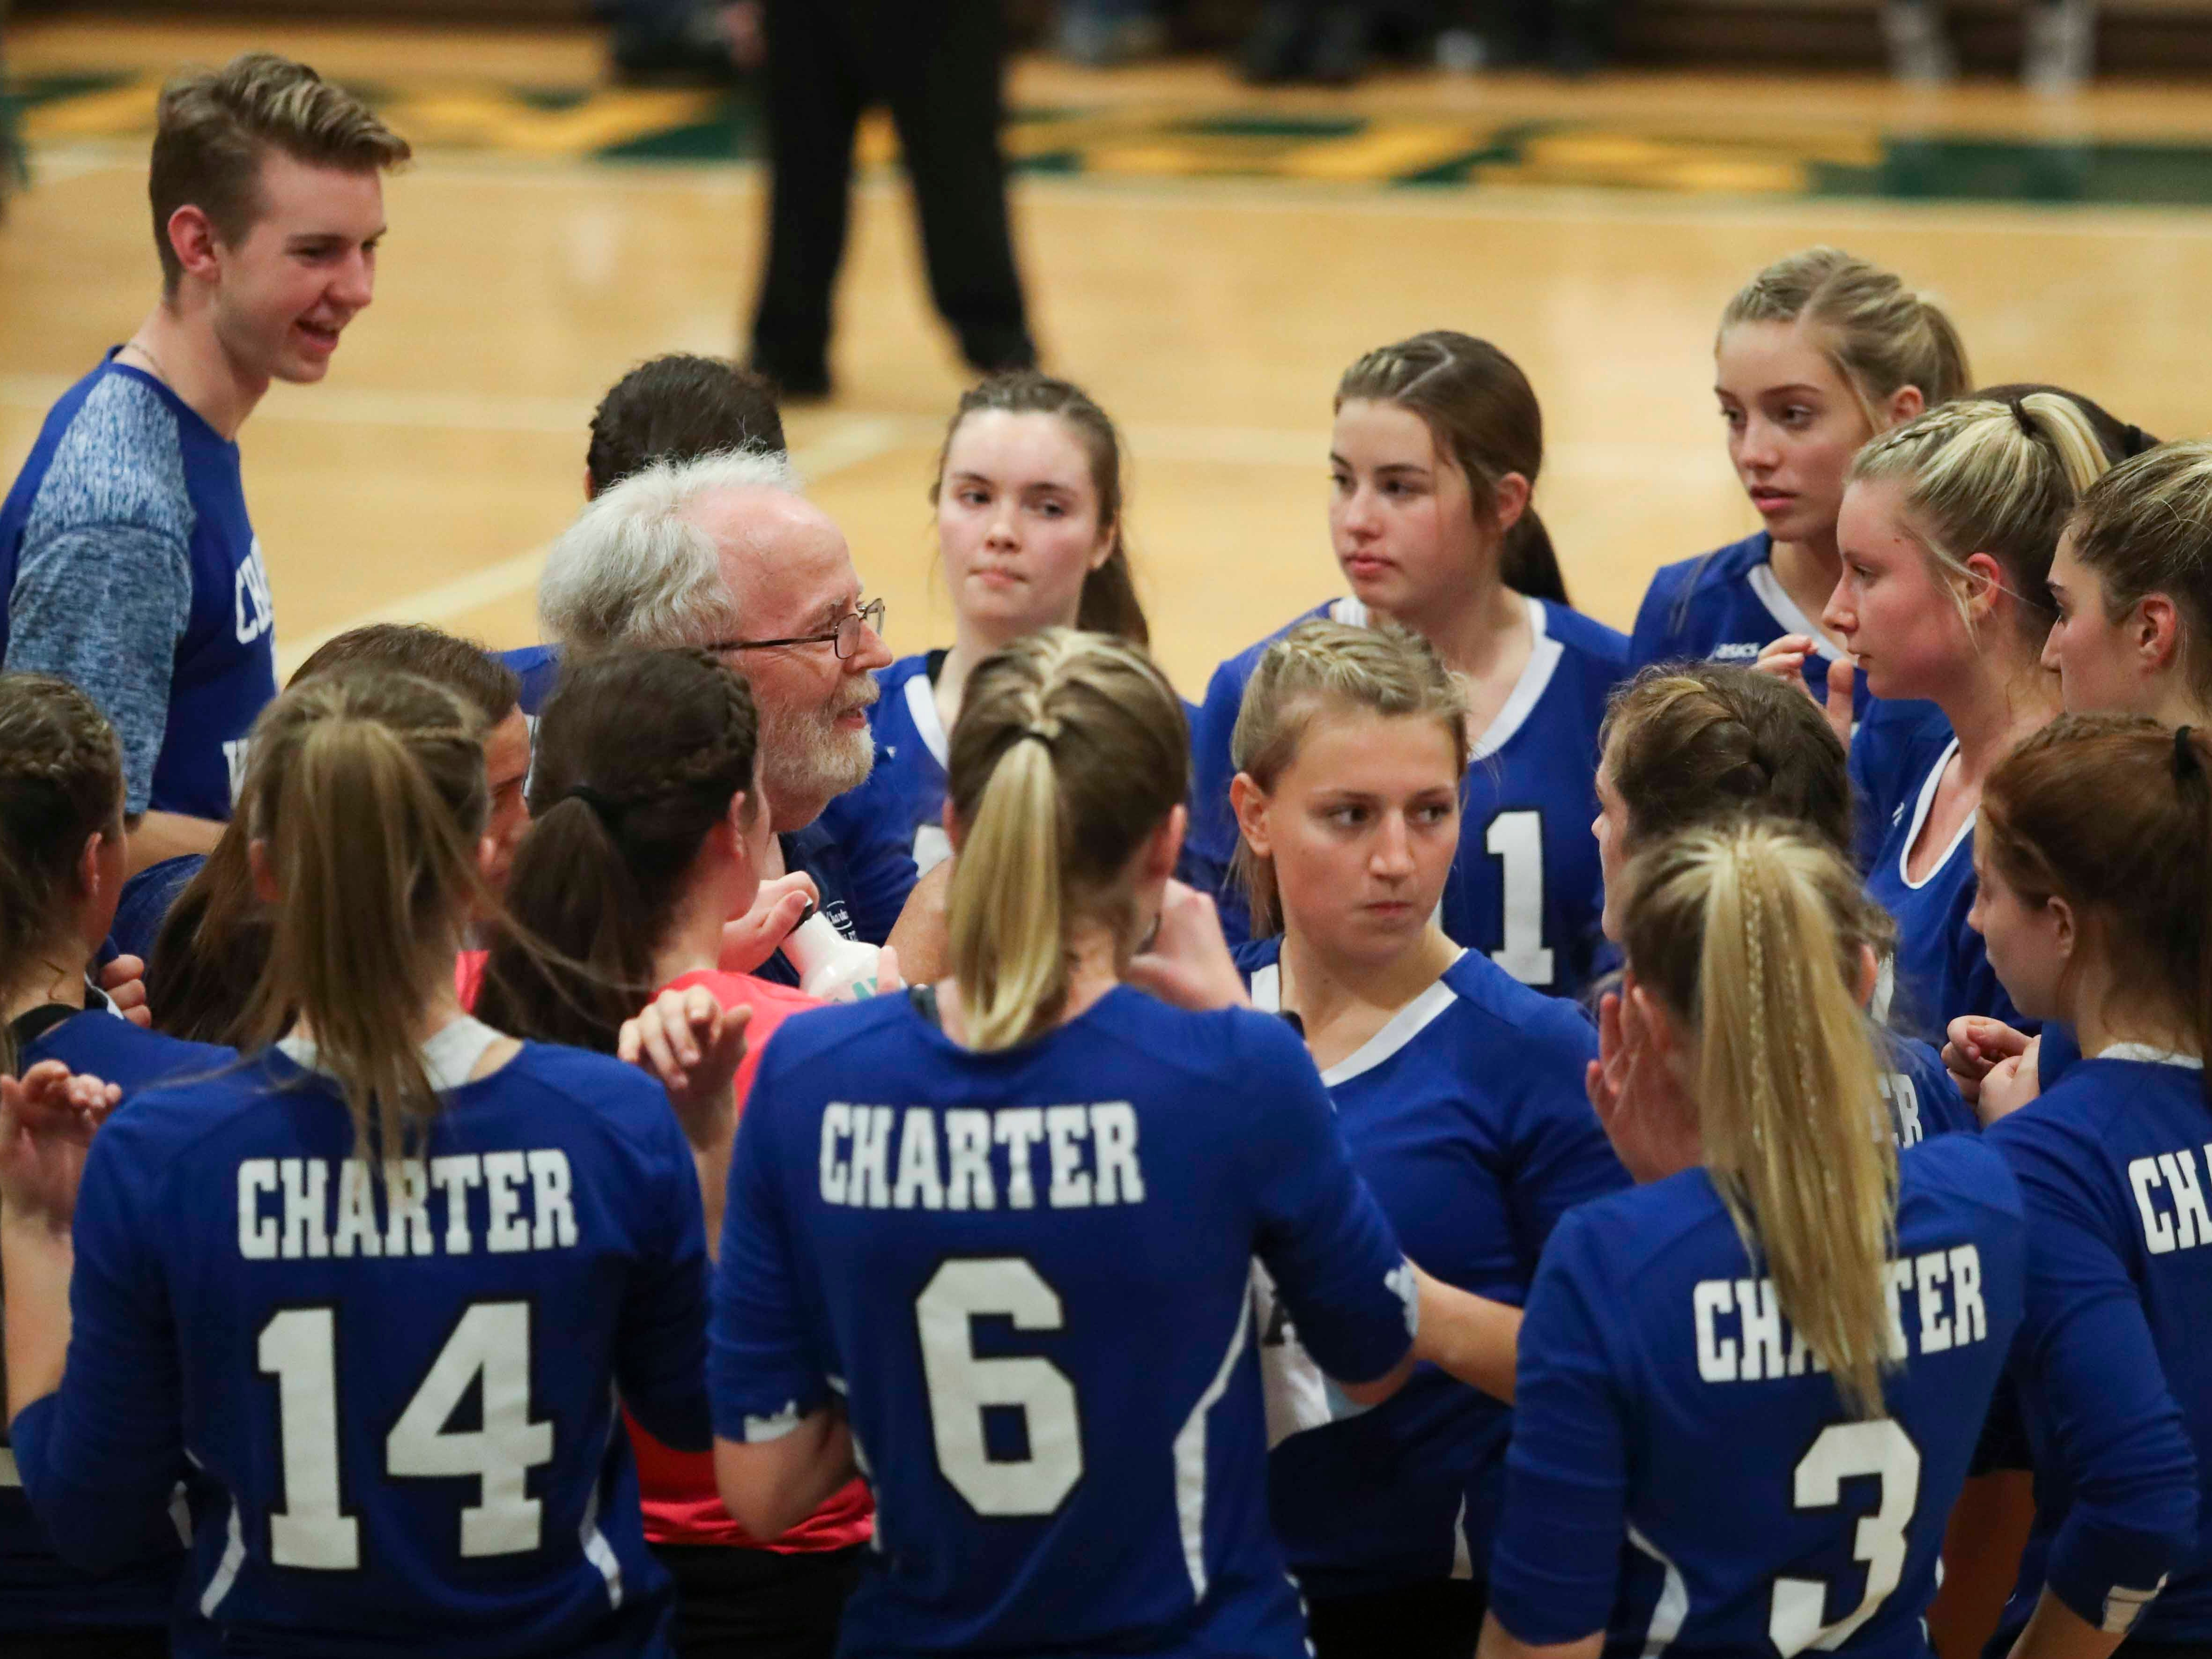 Charter School of Wilmington head coach Dave Stover gathers his team in a timeout as the Force nears advancing to Monday's final in the DIAA state tournament Thursday at St. Mark's High School.